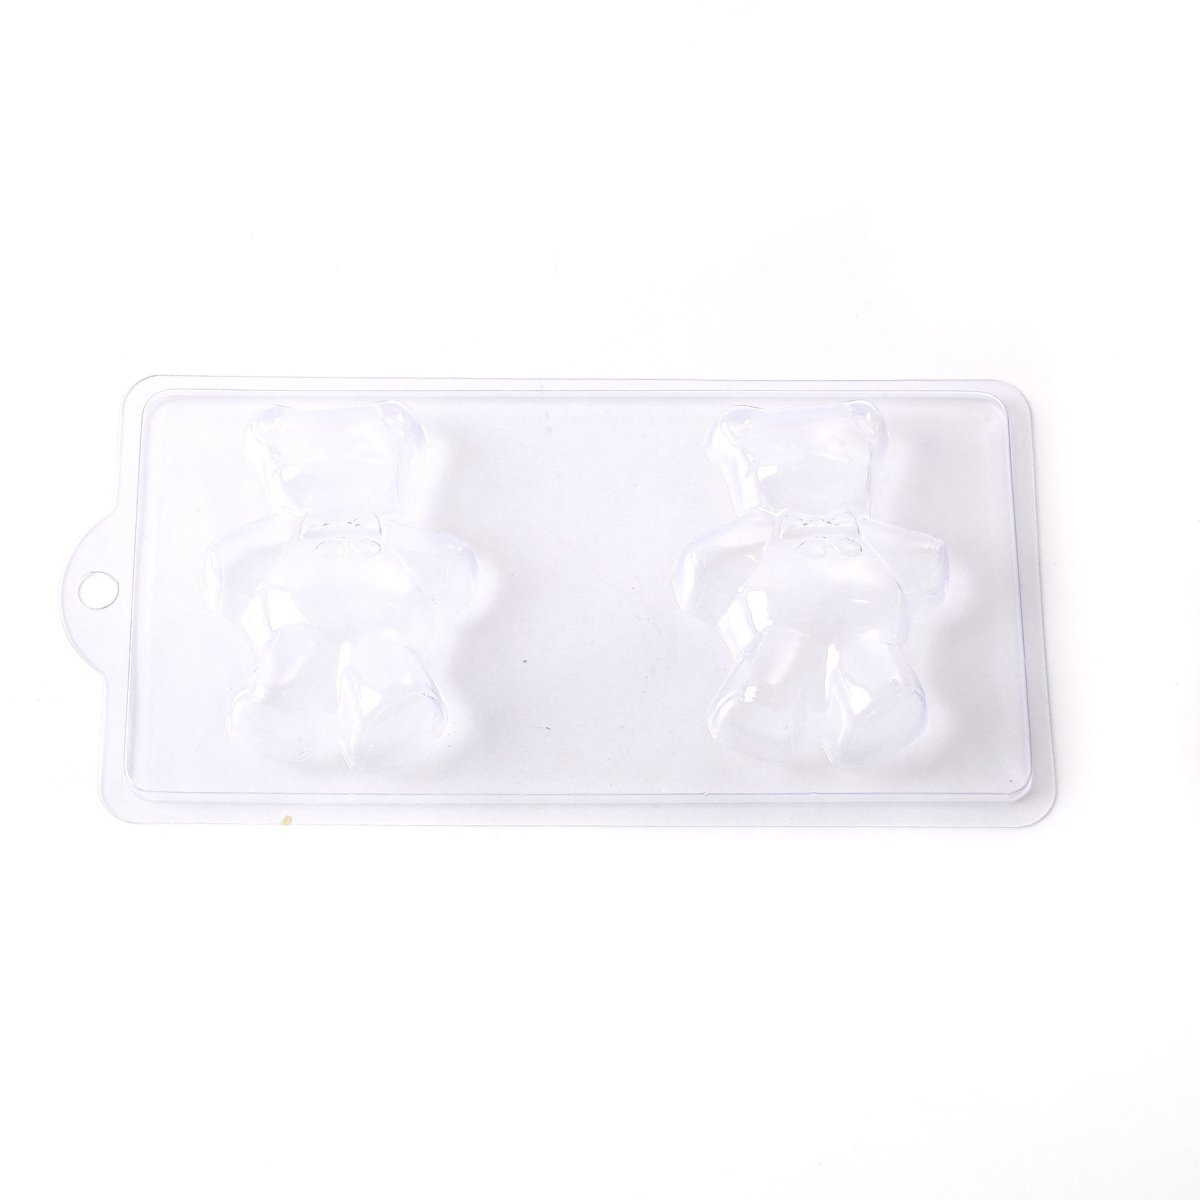 Teddy PVC Mould (4 Cavity) E16 - Mystic Moments UK